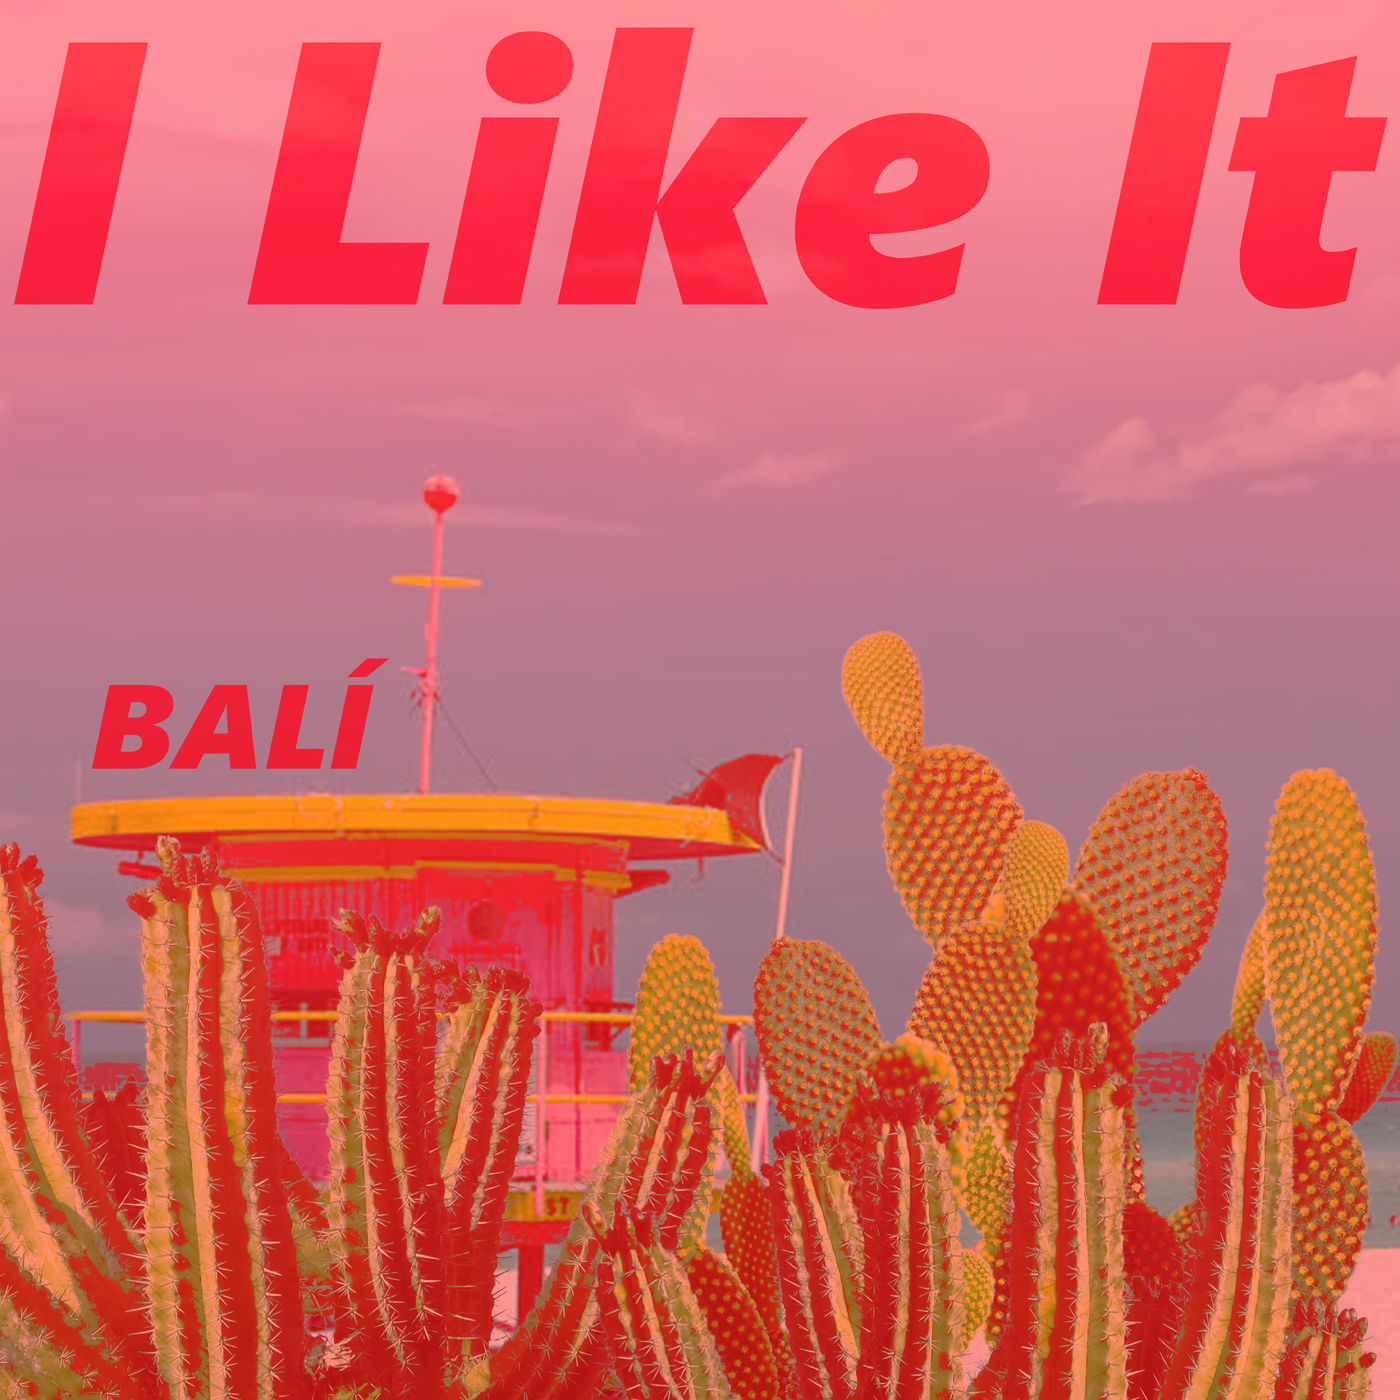 Balí – I Like It (single)